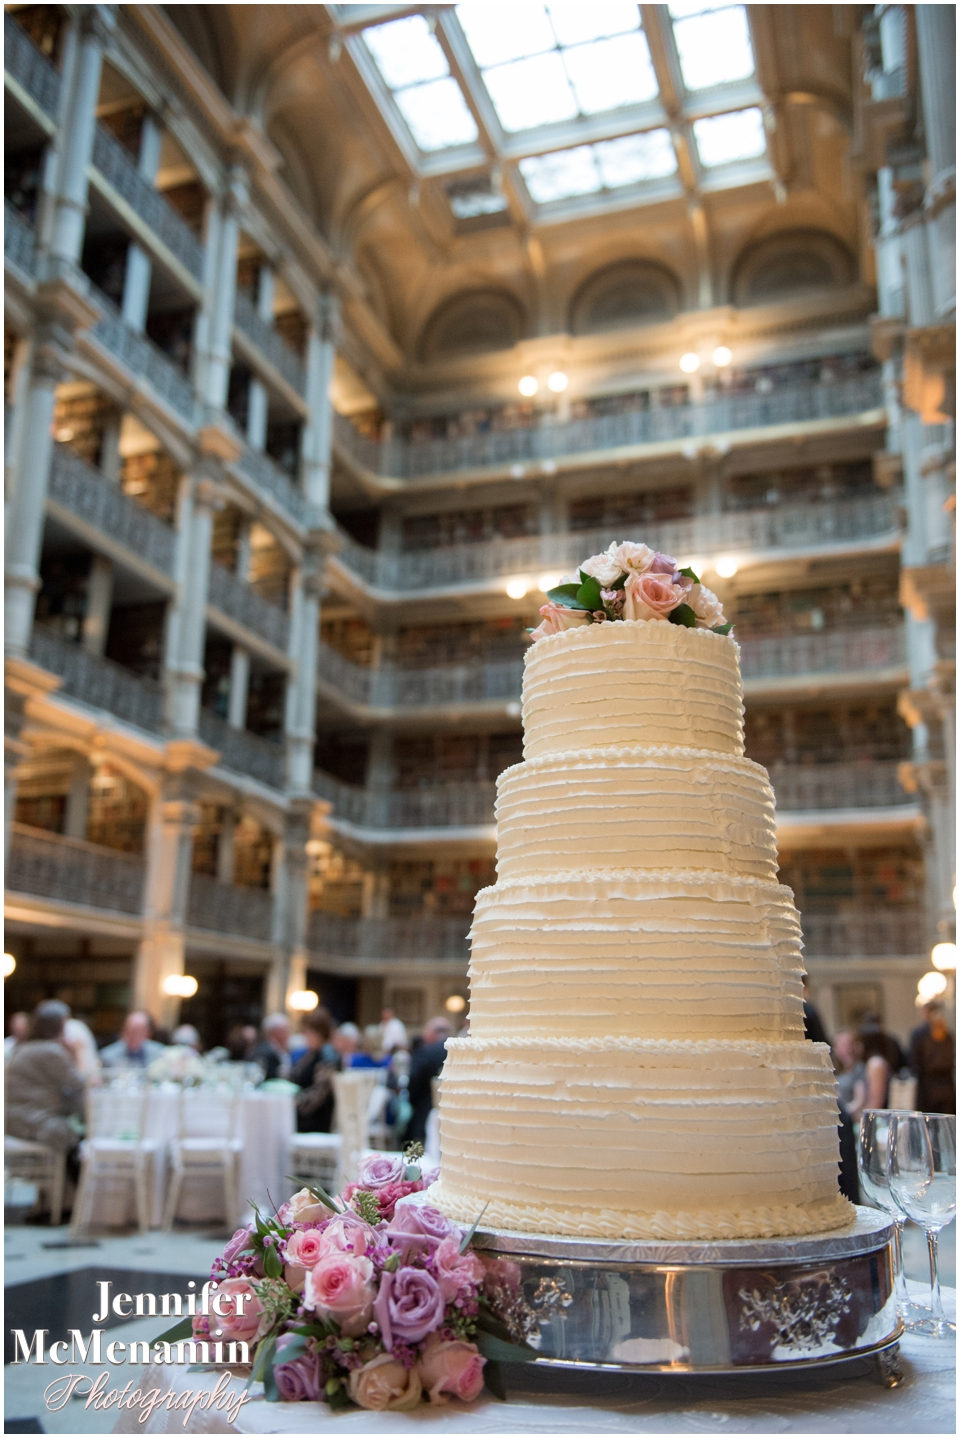 0103-WebbSlivnick_03987-0794_JenniferMcMenaminPhotography_George-Peabody-Library-wedding_Baltimore-wedding-photography_Baltimore-wedding-photographer